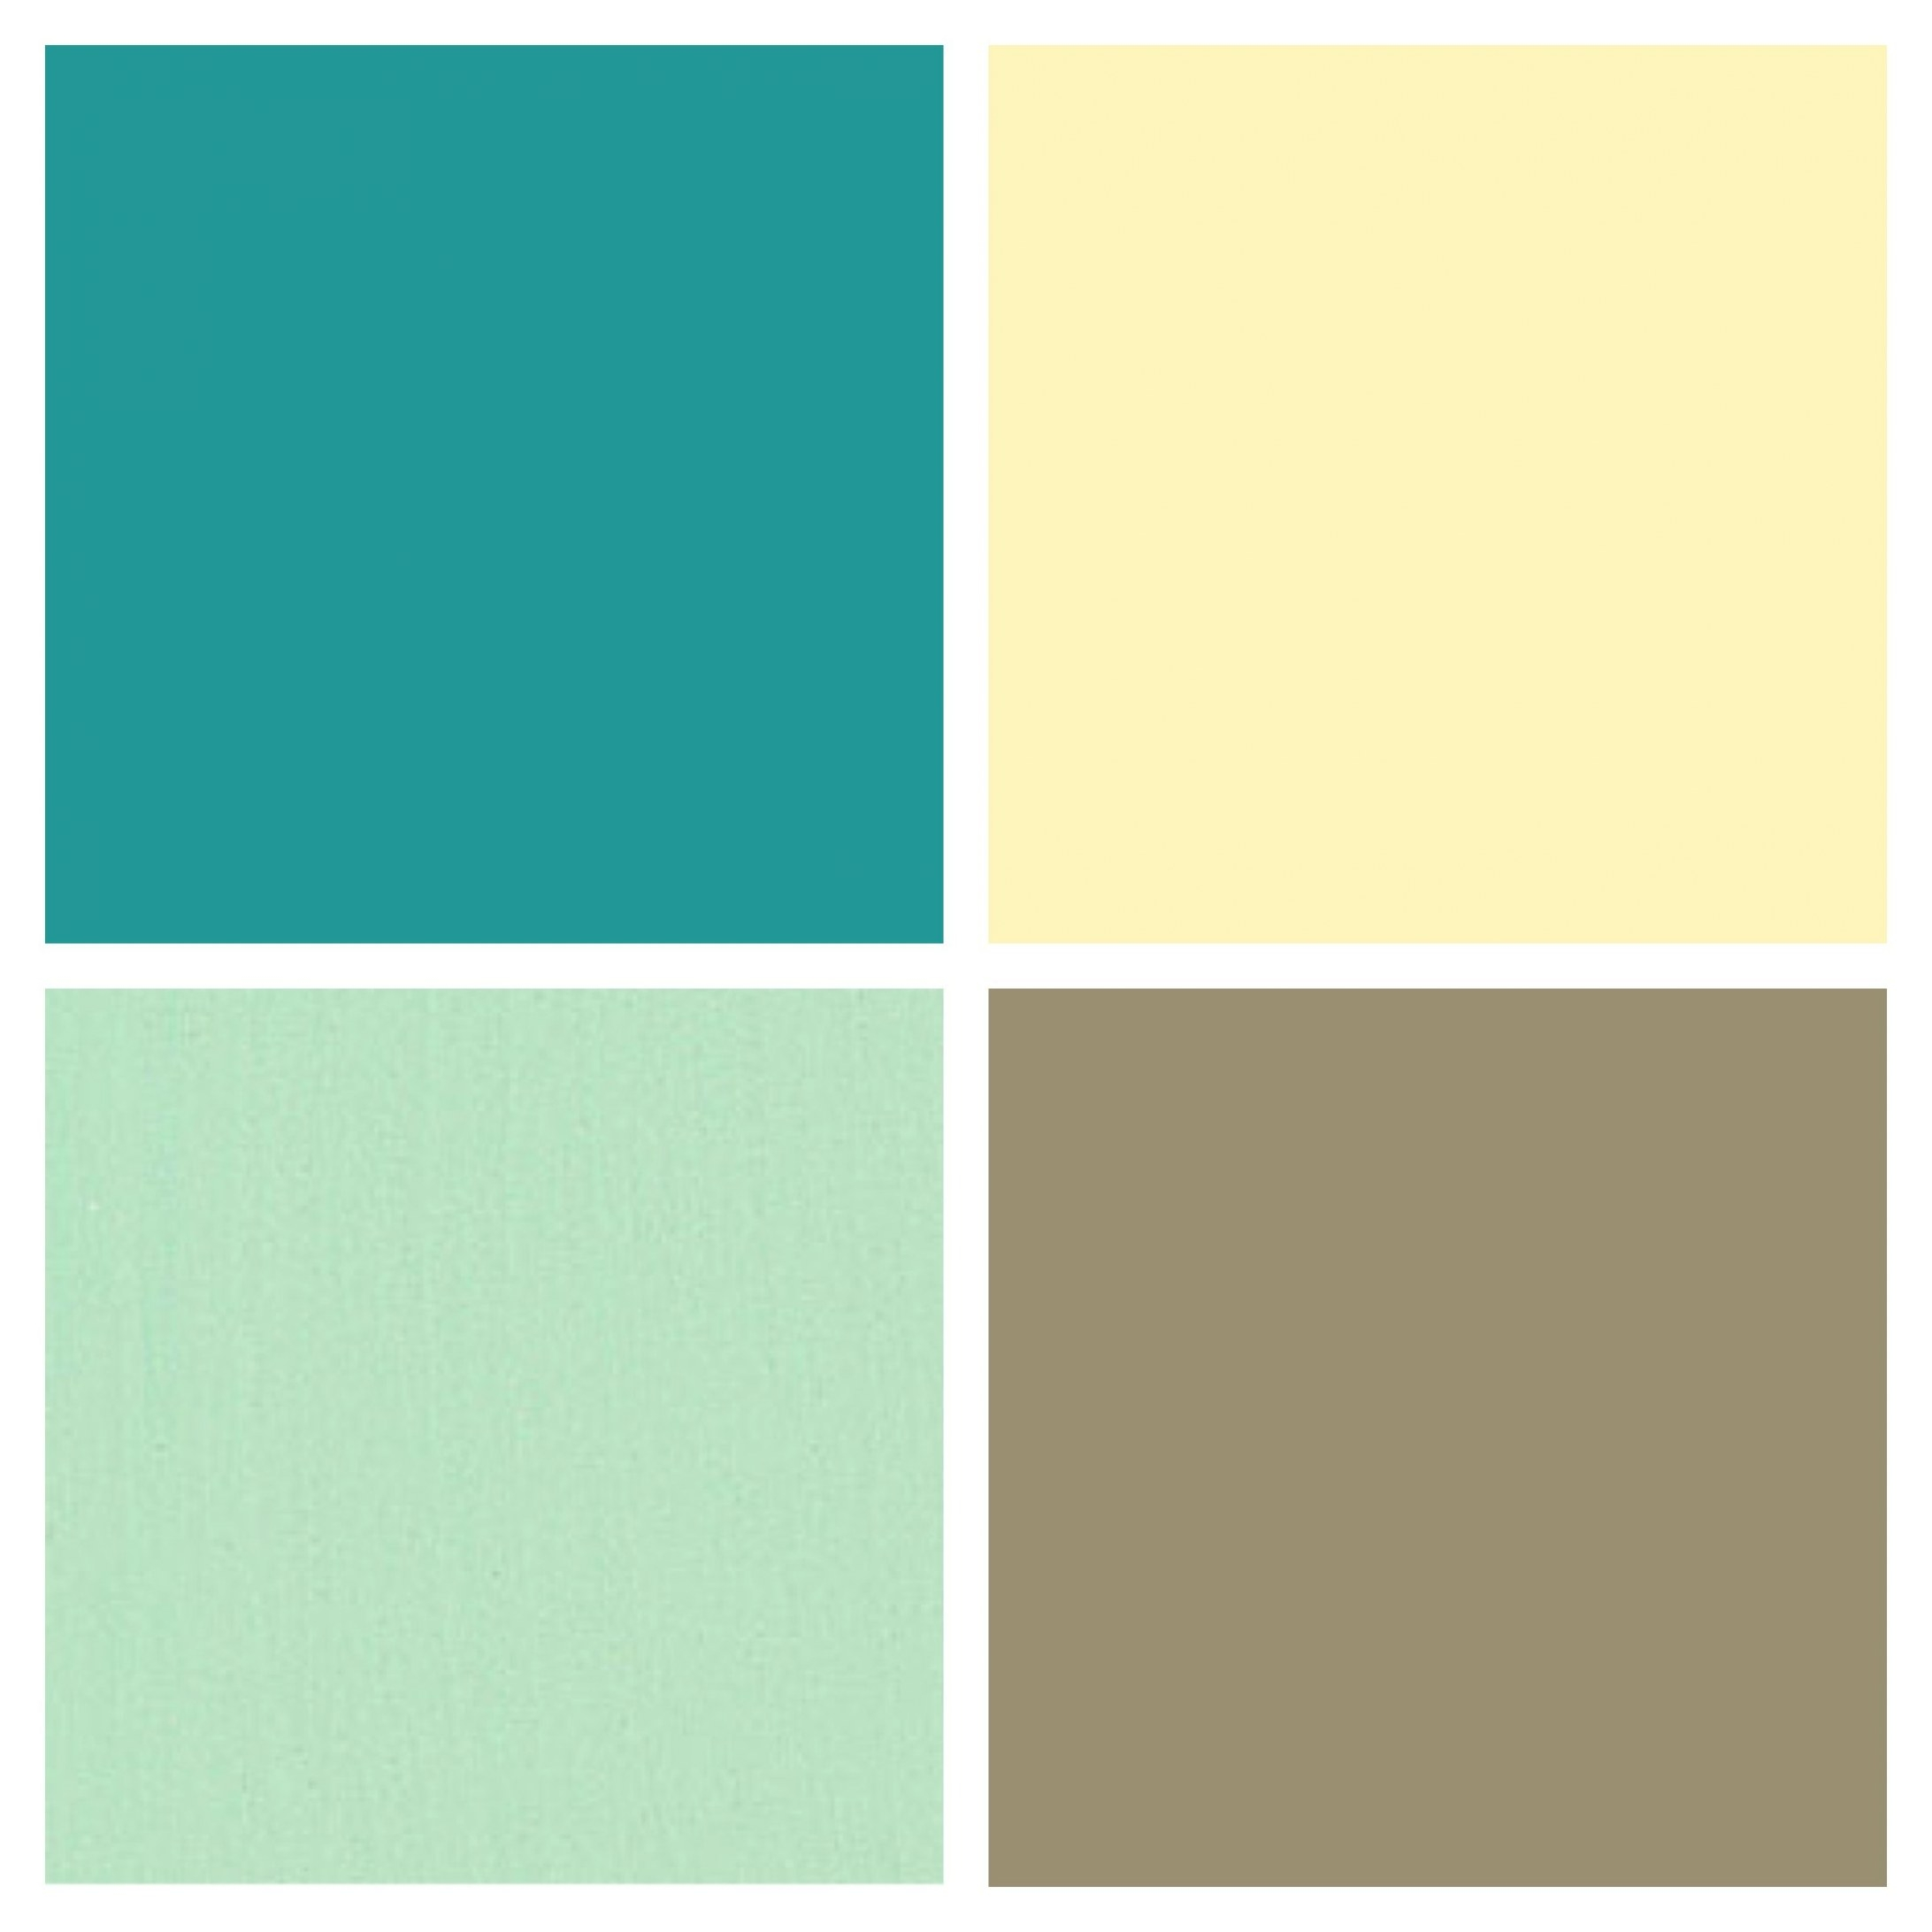 Kitchen Color Palette- Butter / Country Yellow, Mint pertaining to Blue And Brown Color Palette